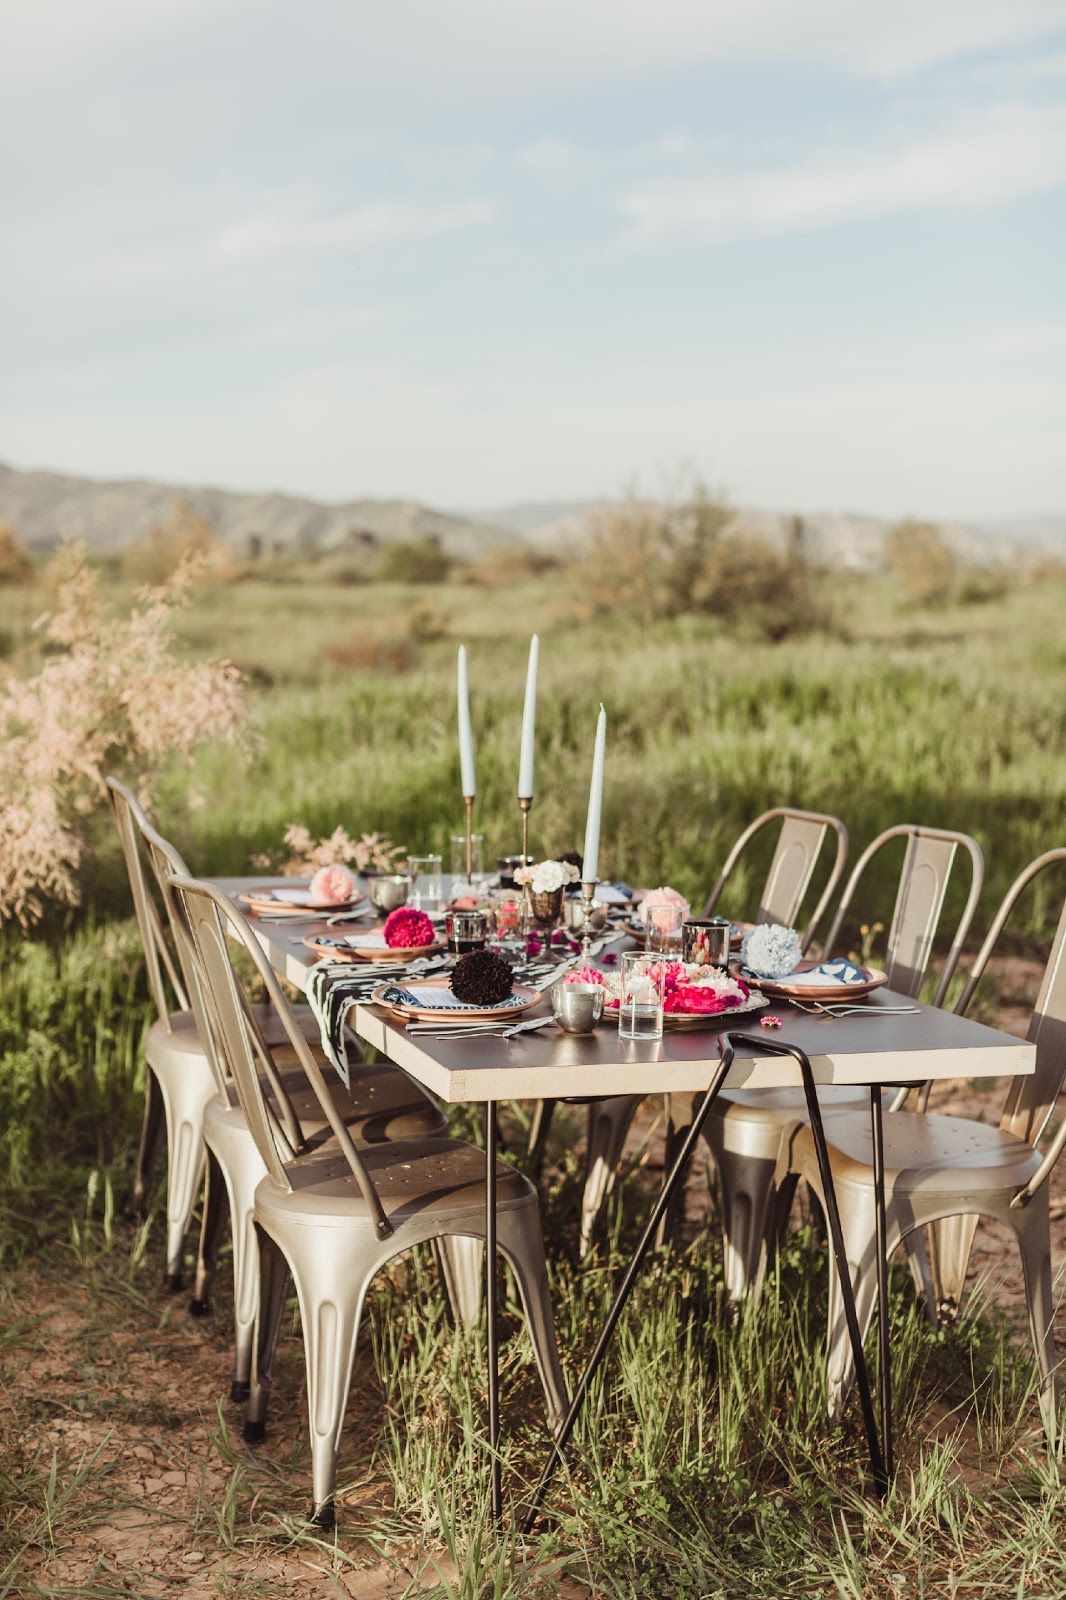 Jamie_English_Photography_Styled_Elopement_Valle_de_Guadalupe_Baja_California_Mexico_Luna_Wild_March_2017-19 (1).jpg